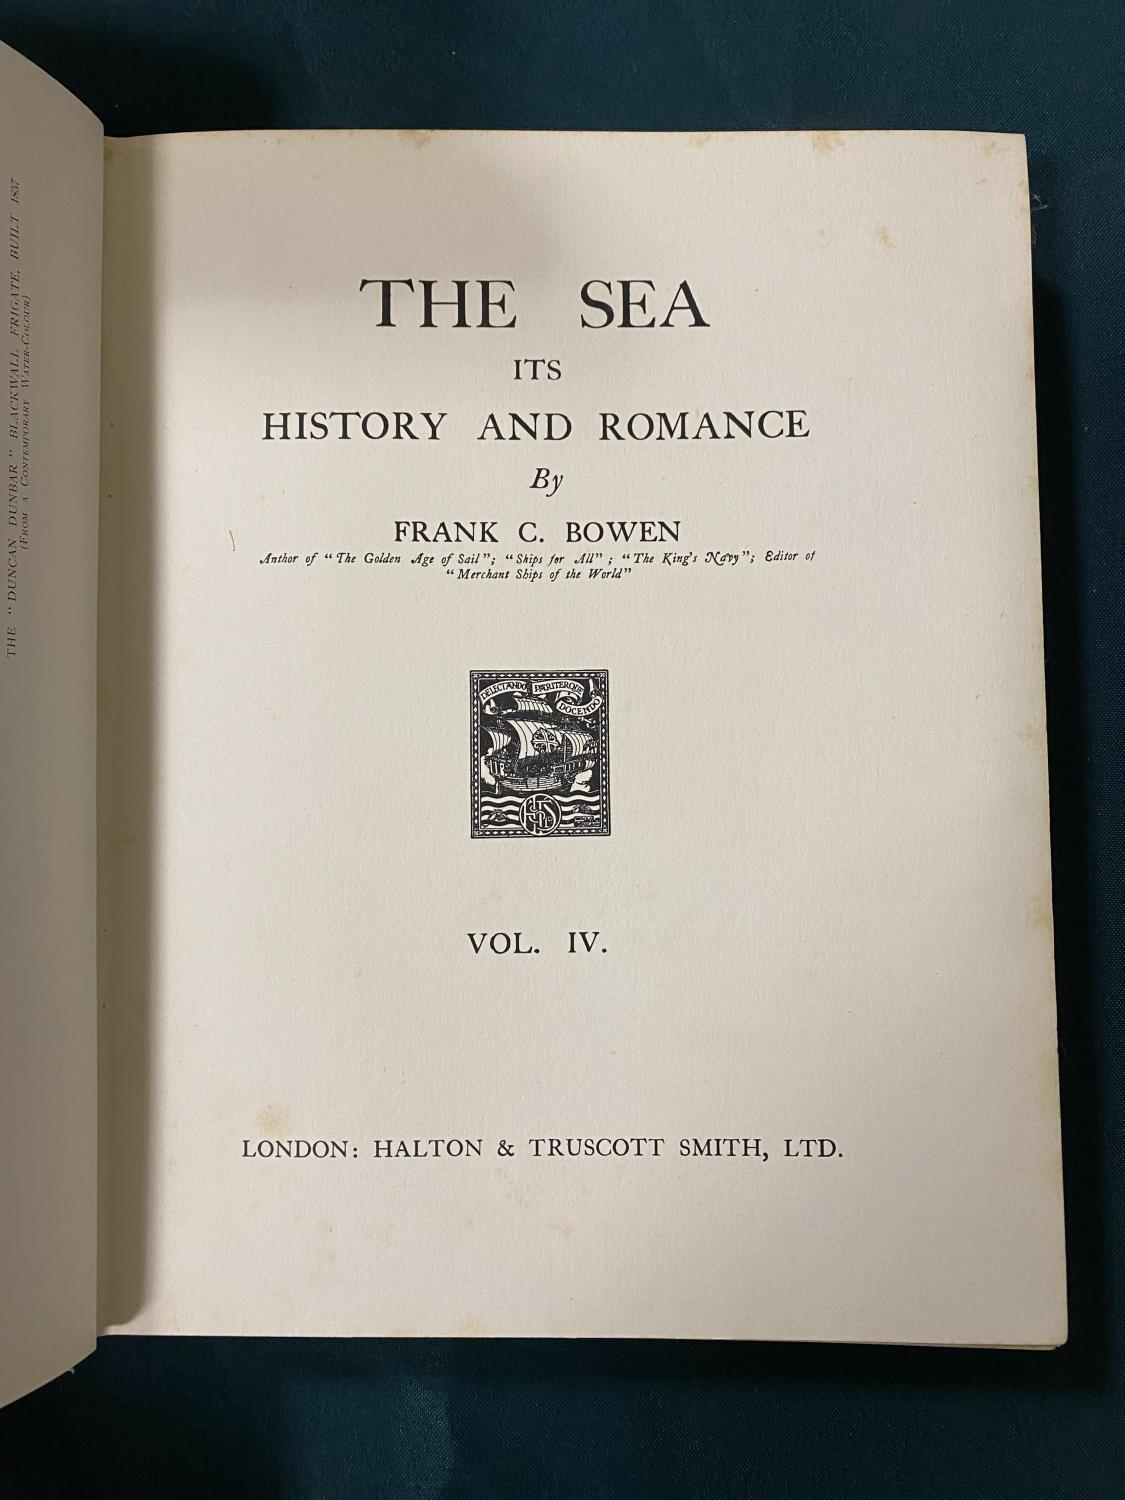 Bowen, Frank Charles. The Sea, Its History and Romance, 4 volumes, first edition, plates, some - Image 3 of 6